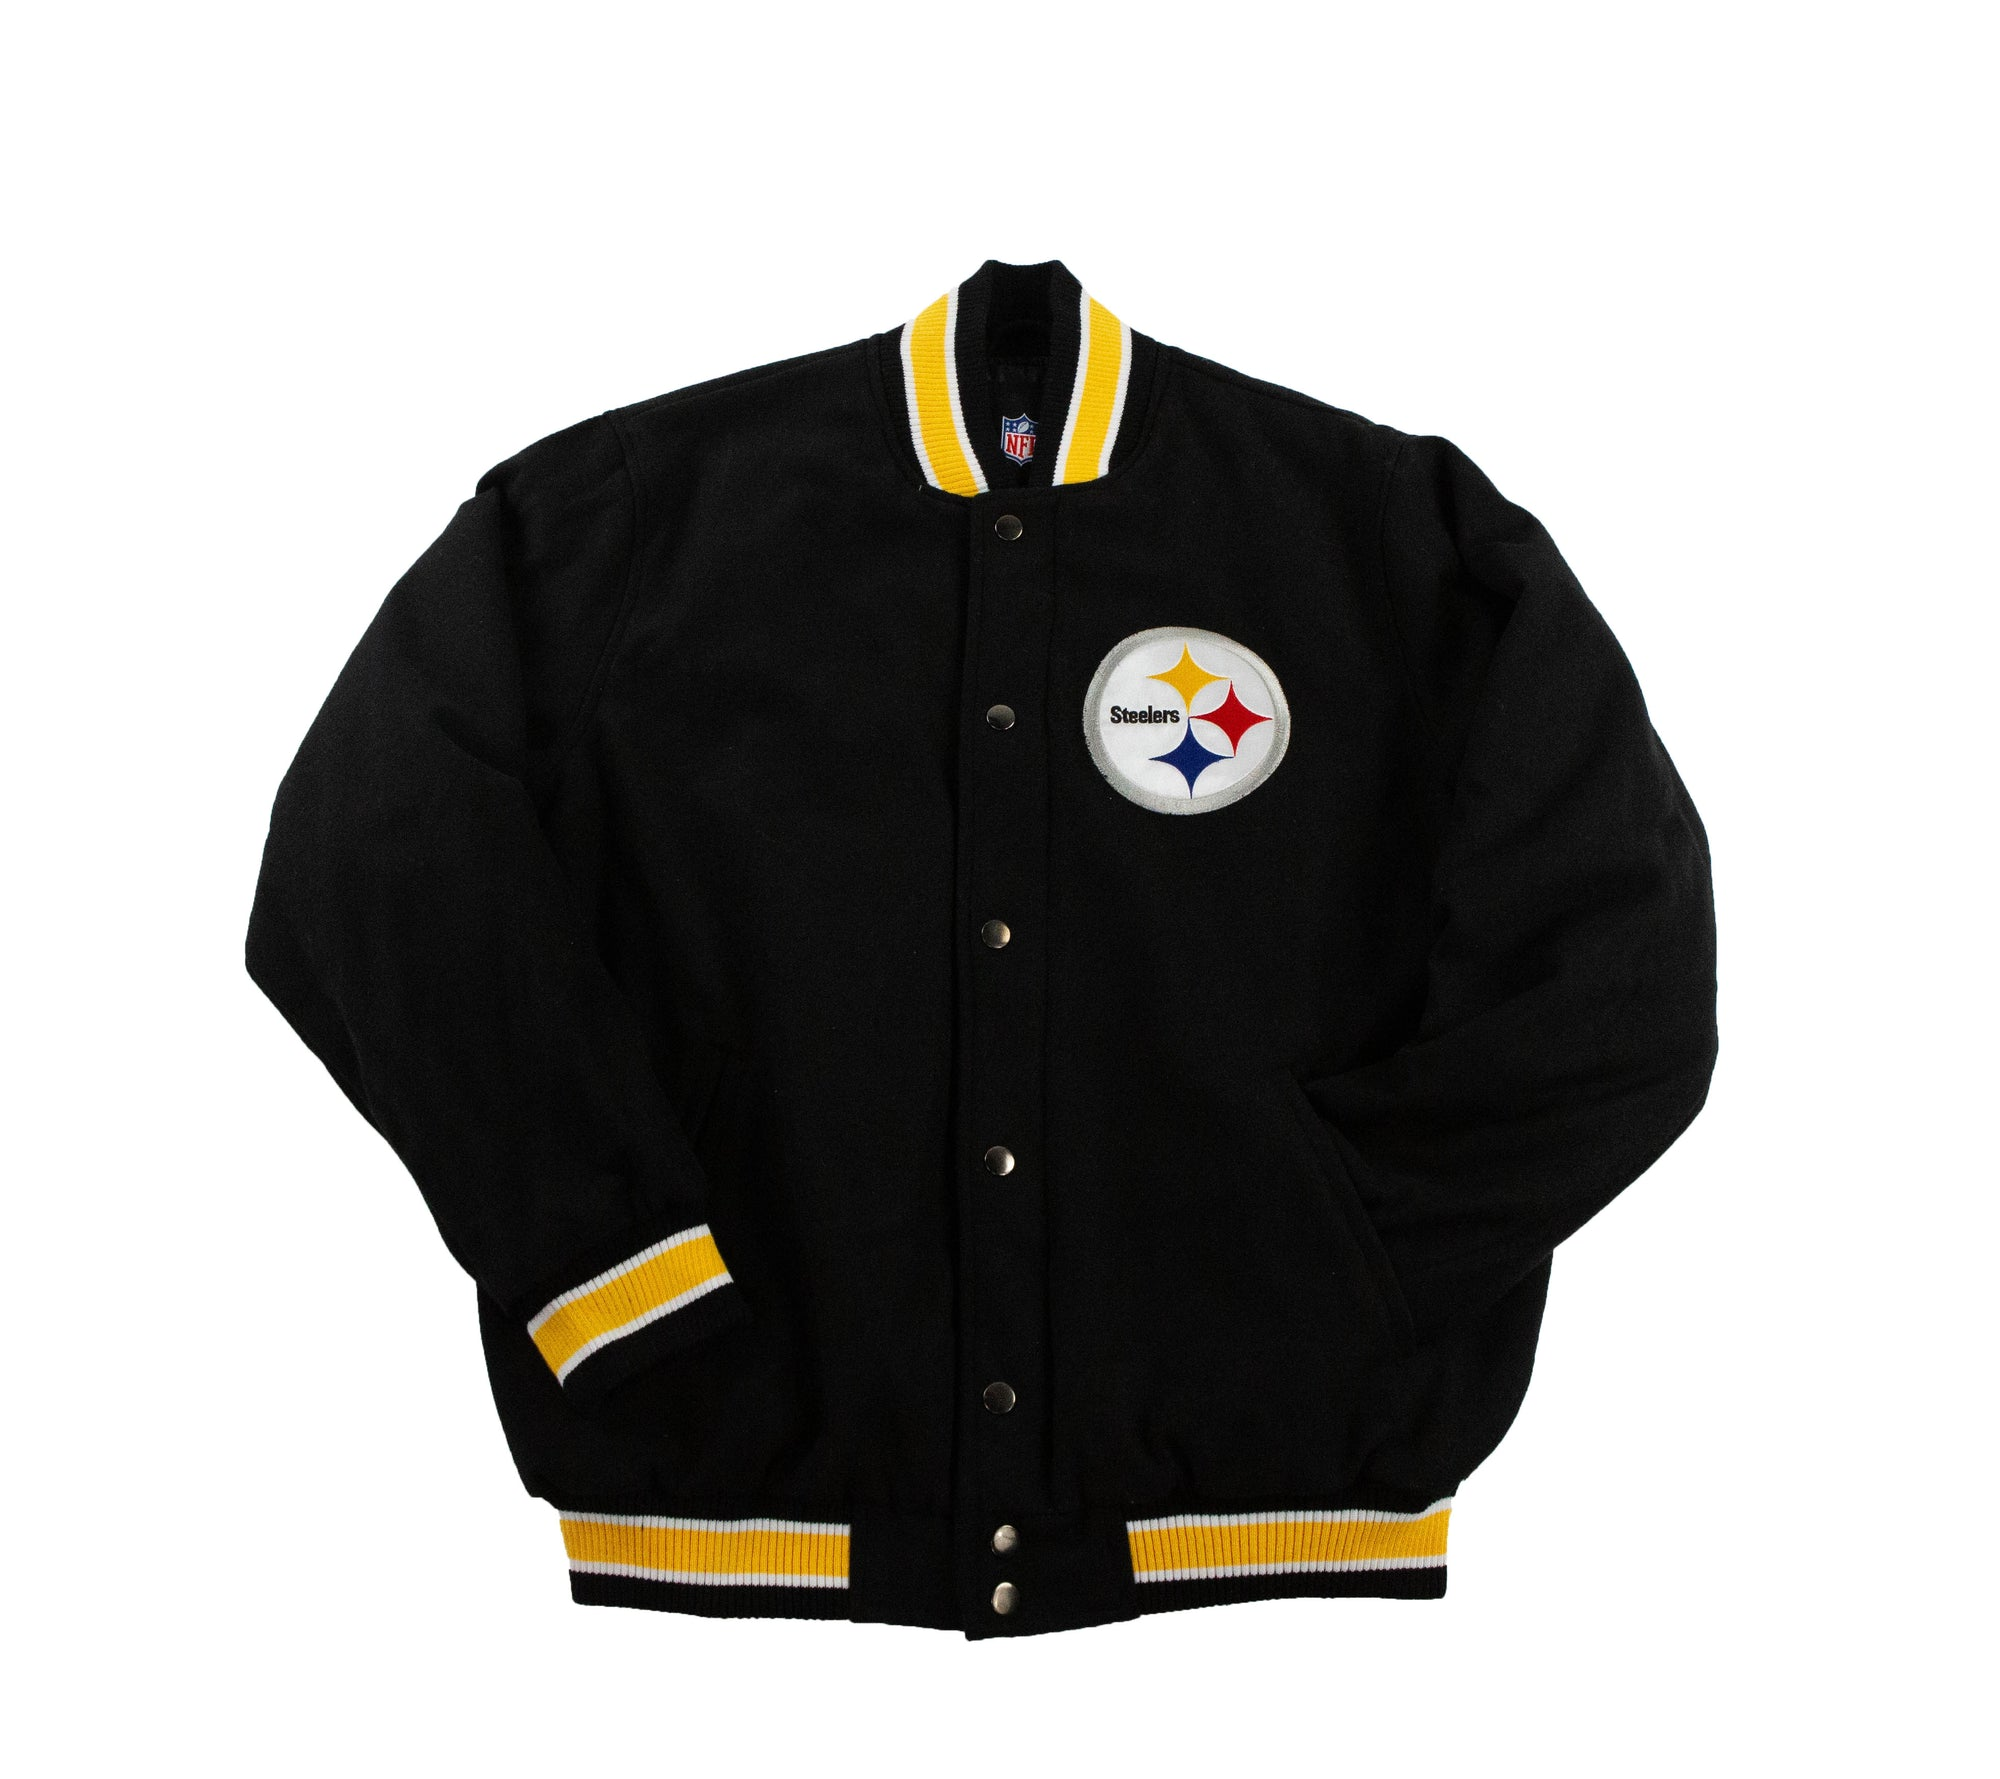 superior quality 2a46e 945df PITTSBURGH STEELERS WOOL VARSITY JACKET